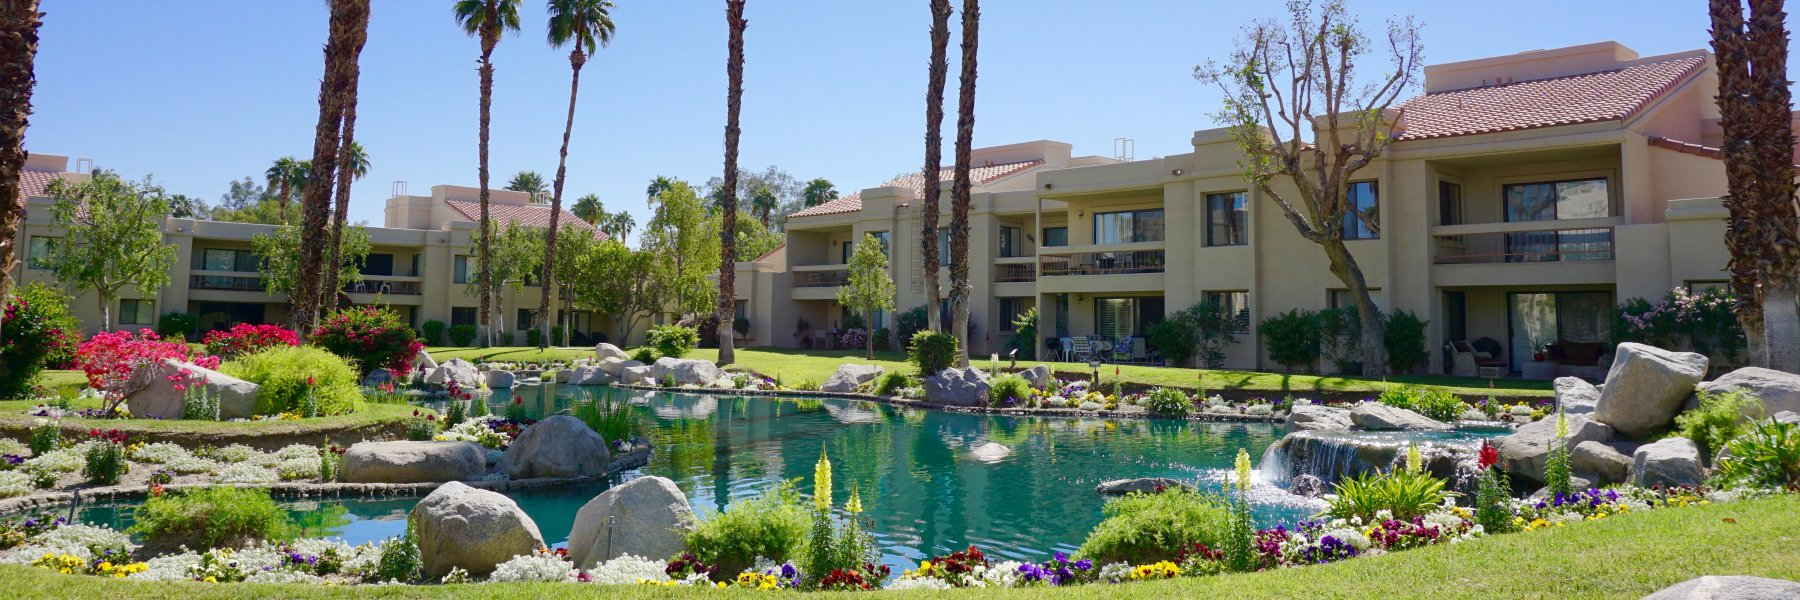 Canyon Shores is a community of attached homes in Cathedral City California